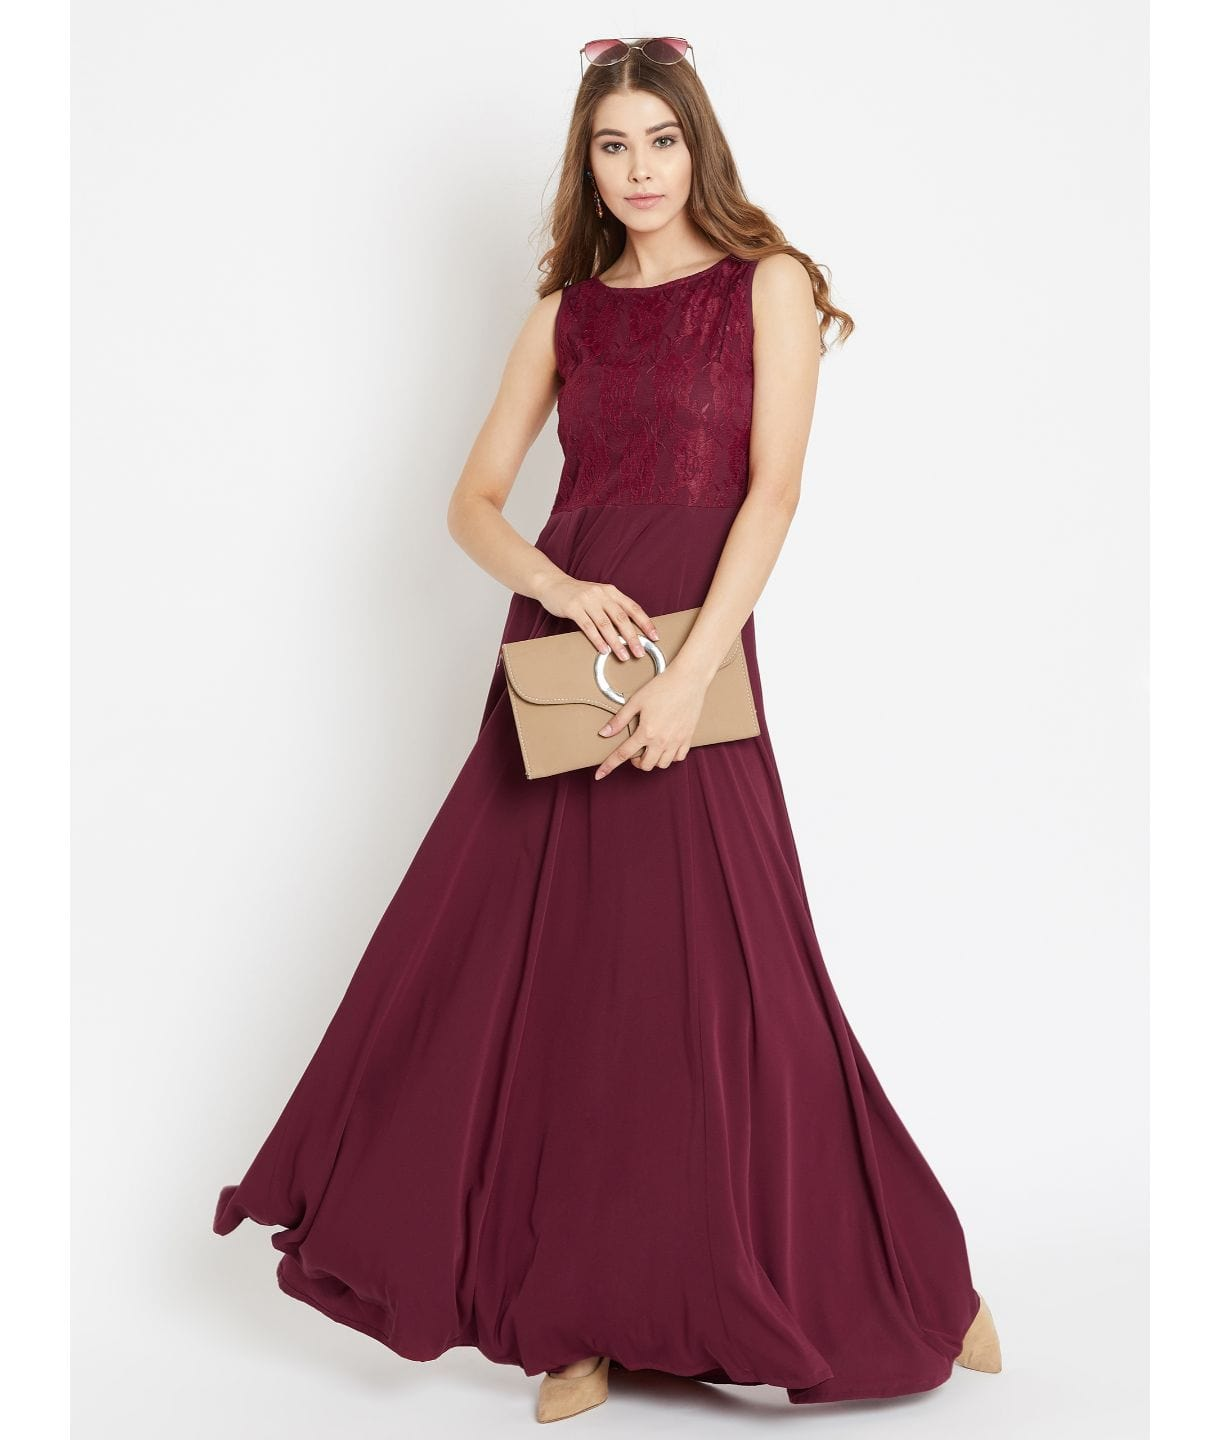 Maroon Solid Sleeveless Crepe Maxi Dress/Gown With Lace Details